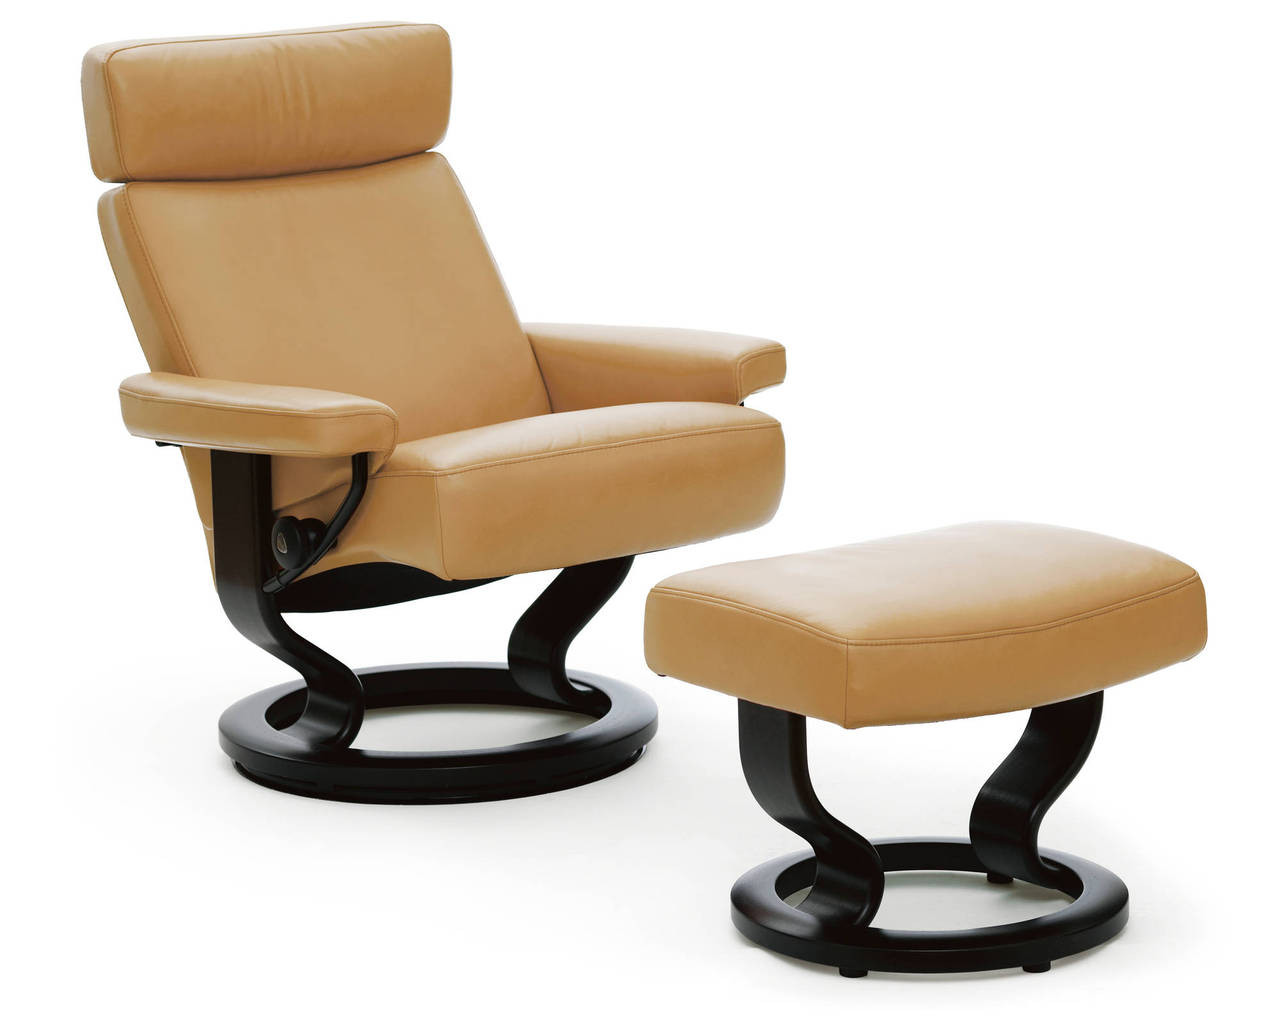 Stressless-world.com Stressless Orion Recliner With Ottoman On Sale Pain Free Delivery